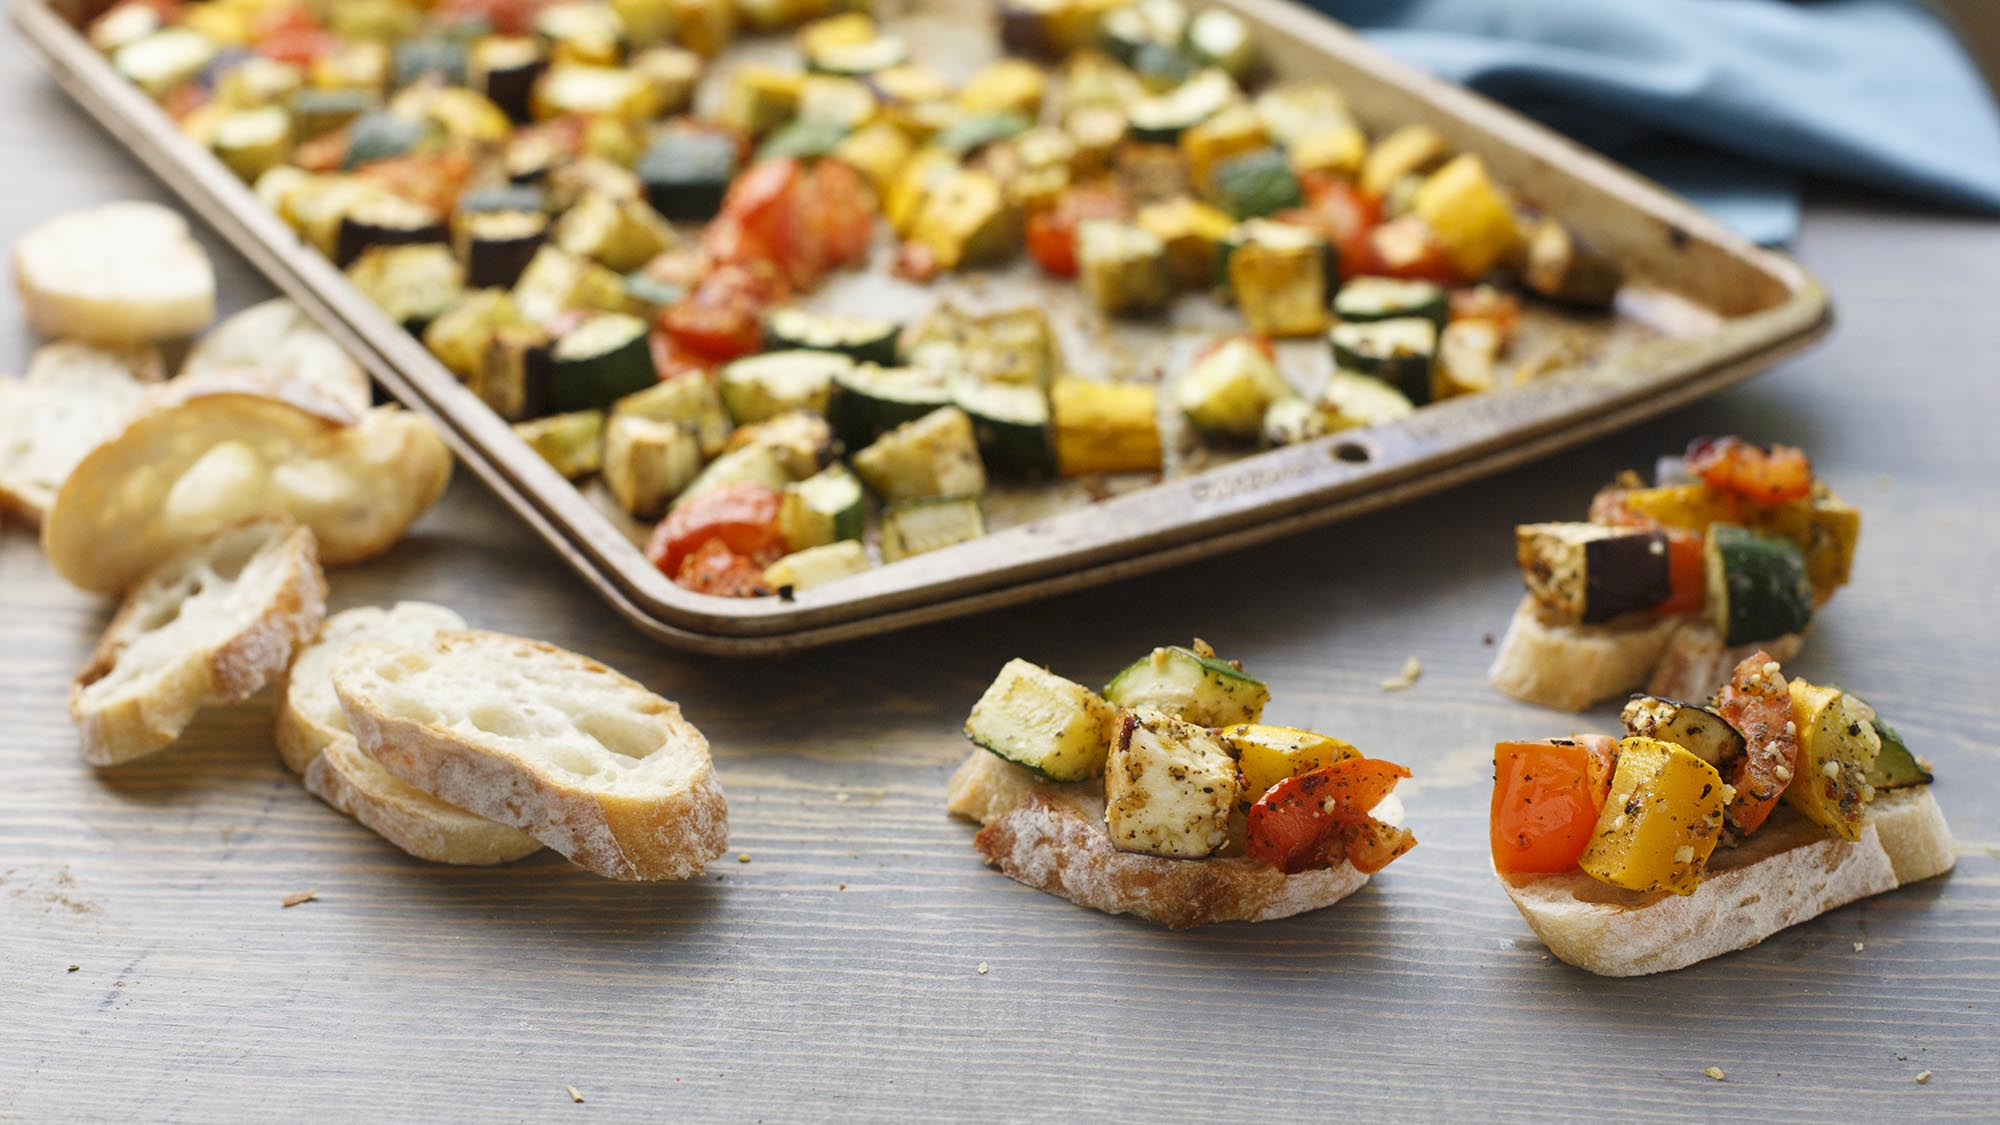 RM_LE_roasted_vegetable_bruschetta_2000x1125.jpg